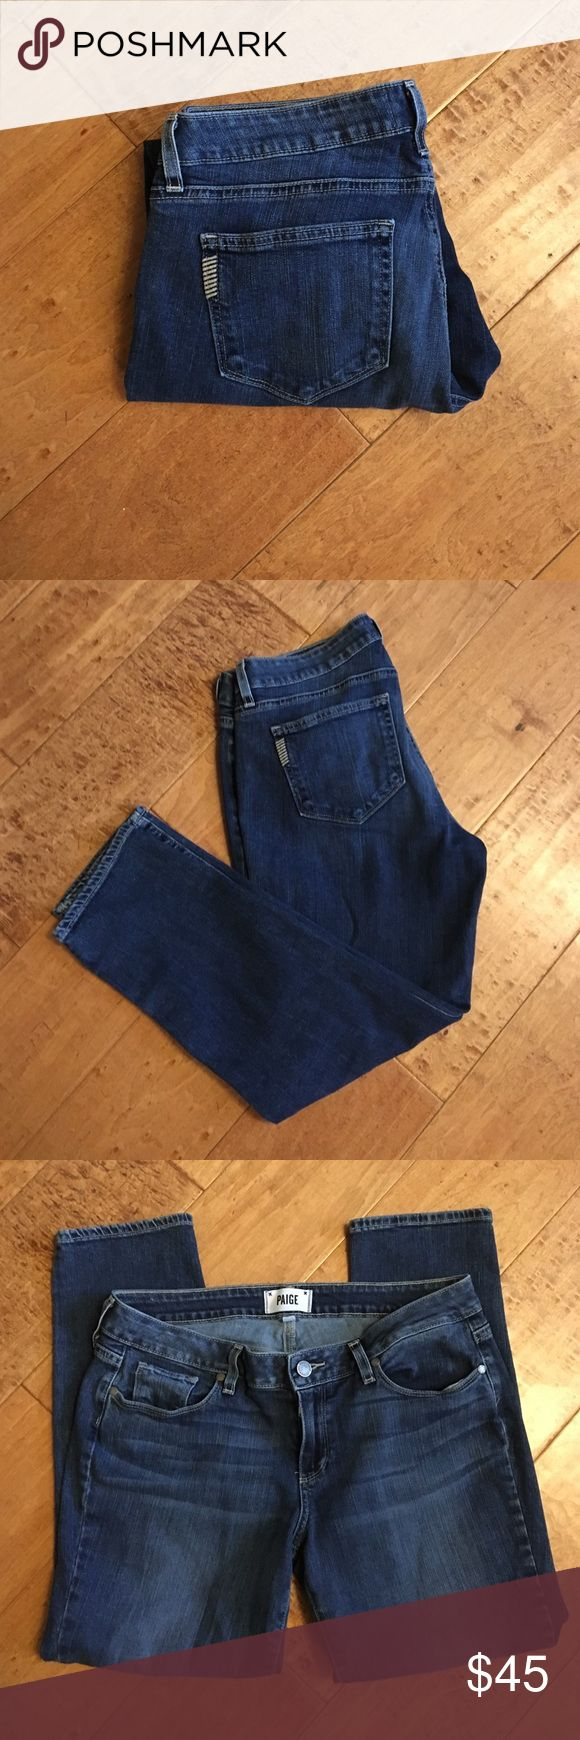 🎉SALE🎉Paige Winslow Crop Jeans 🎉SALE🎉Paige Winslow Jimmy Jimmy Crop Jeans.  Sit low on waist.  Size 28.  Gently used. Paige Jeans Jeans Ankle & Cropped